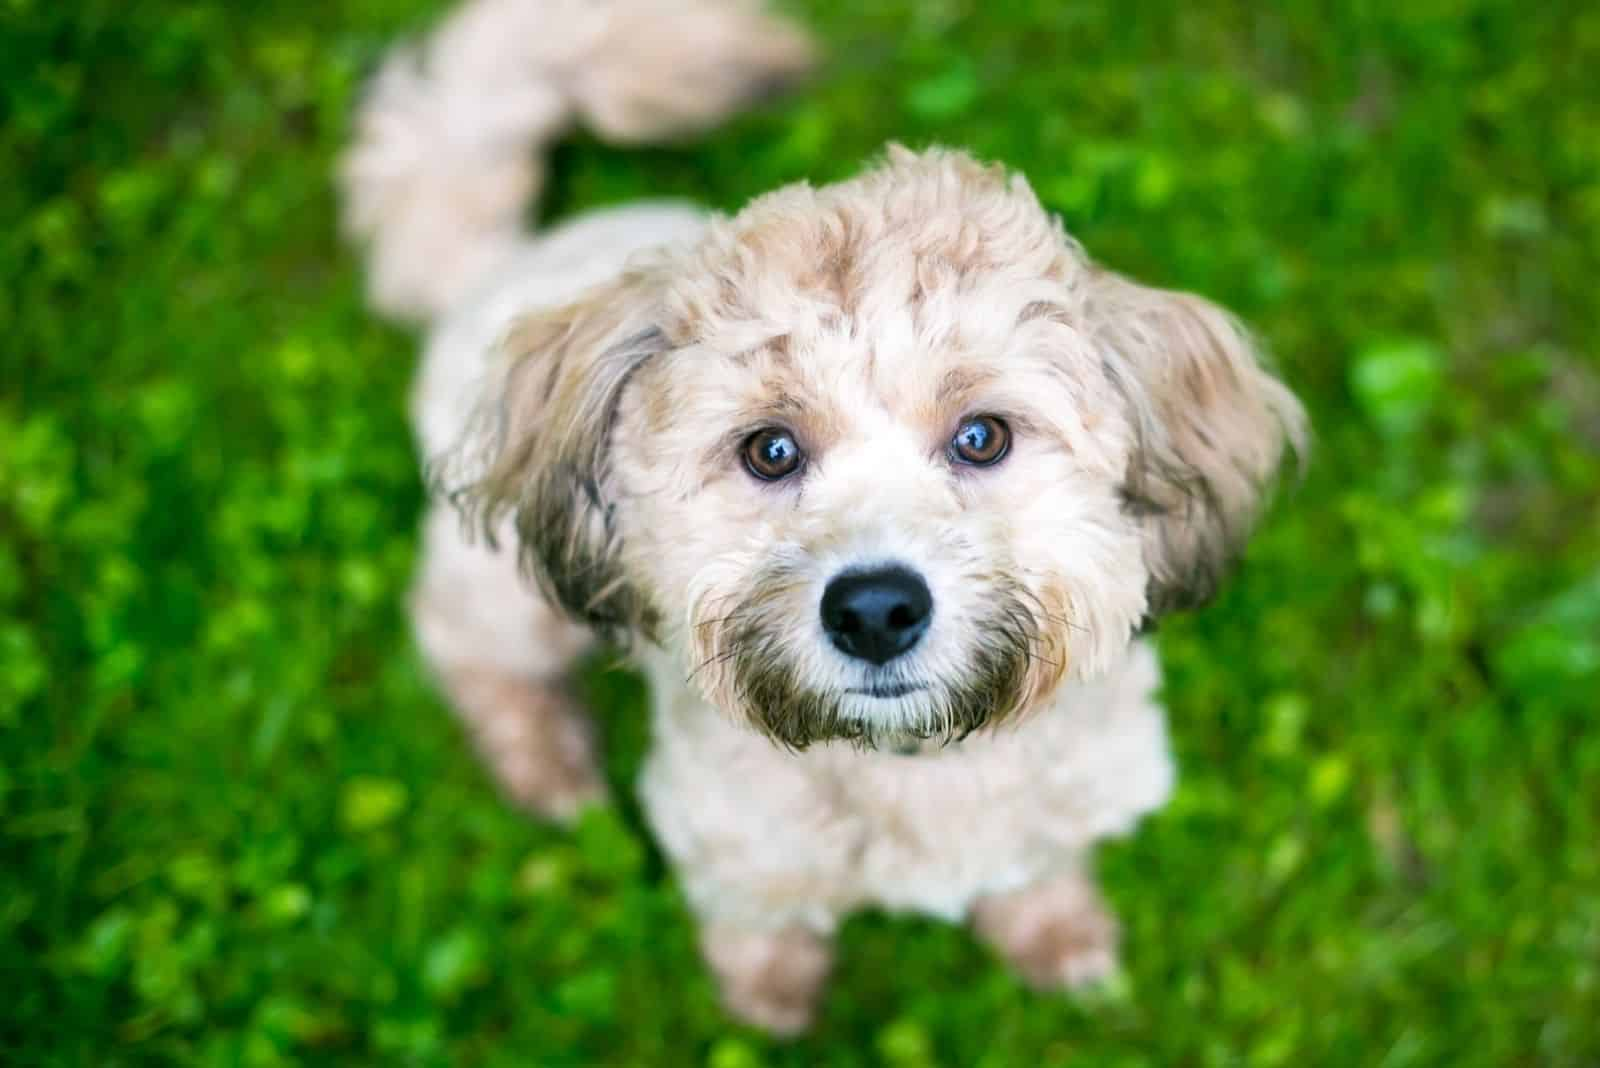 A small Poodle mixed breed dog sitting and looking up at the camera